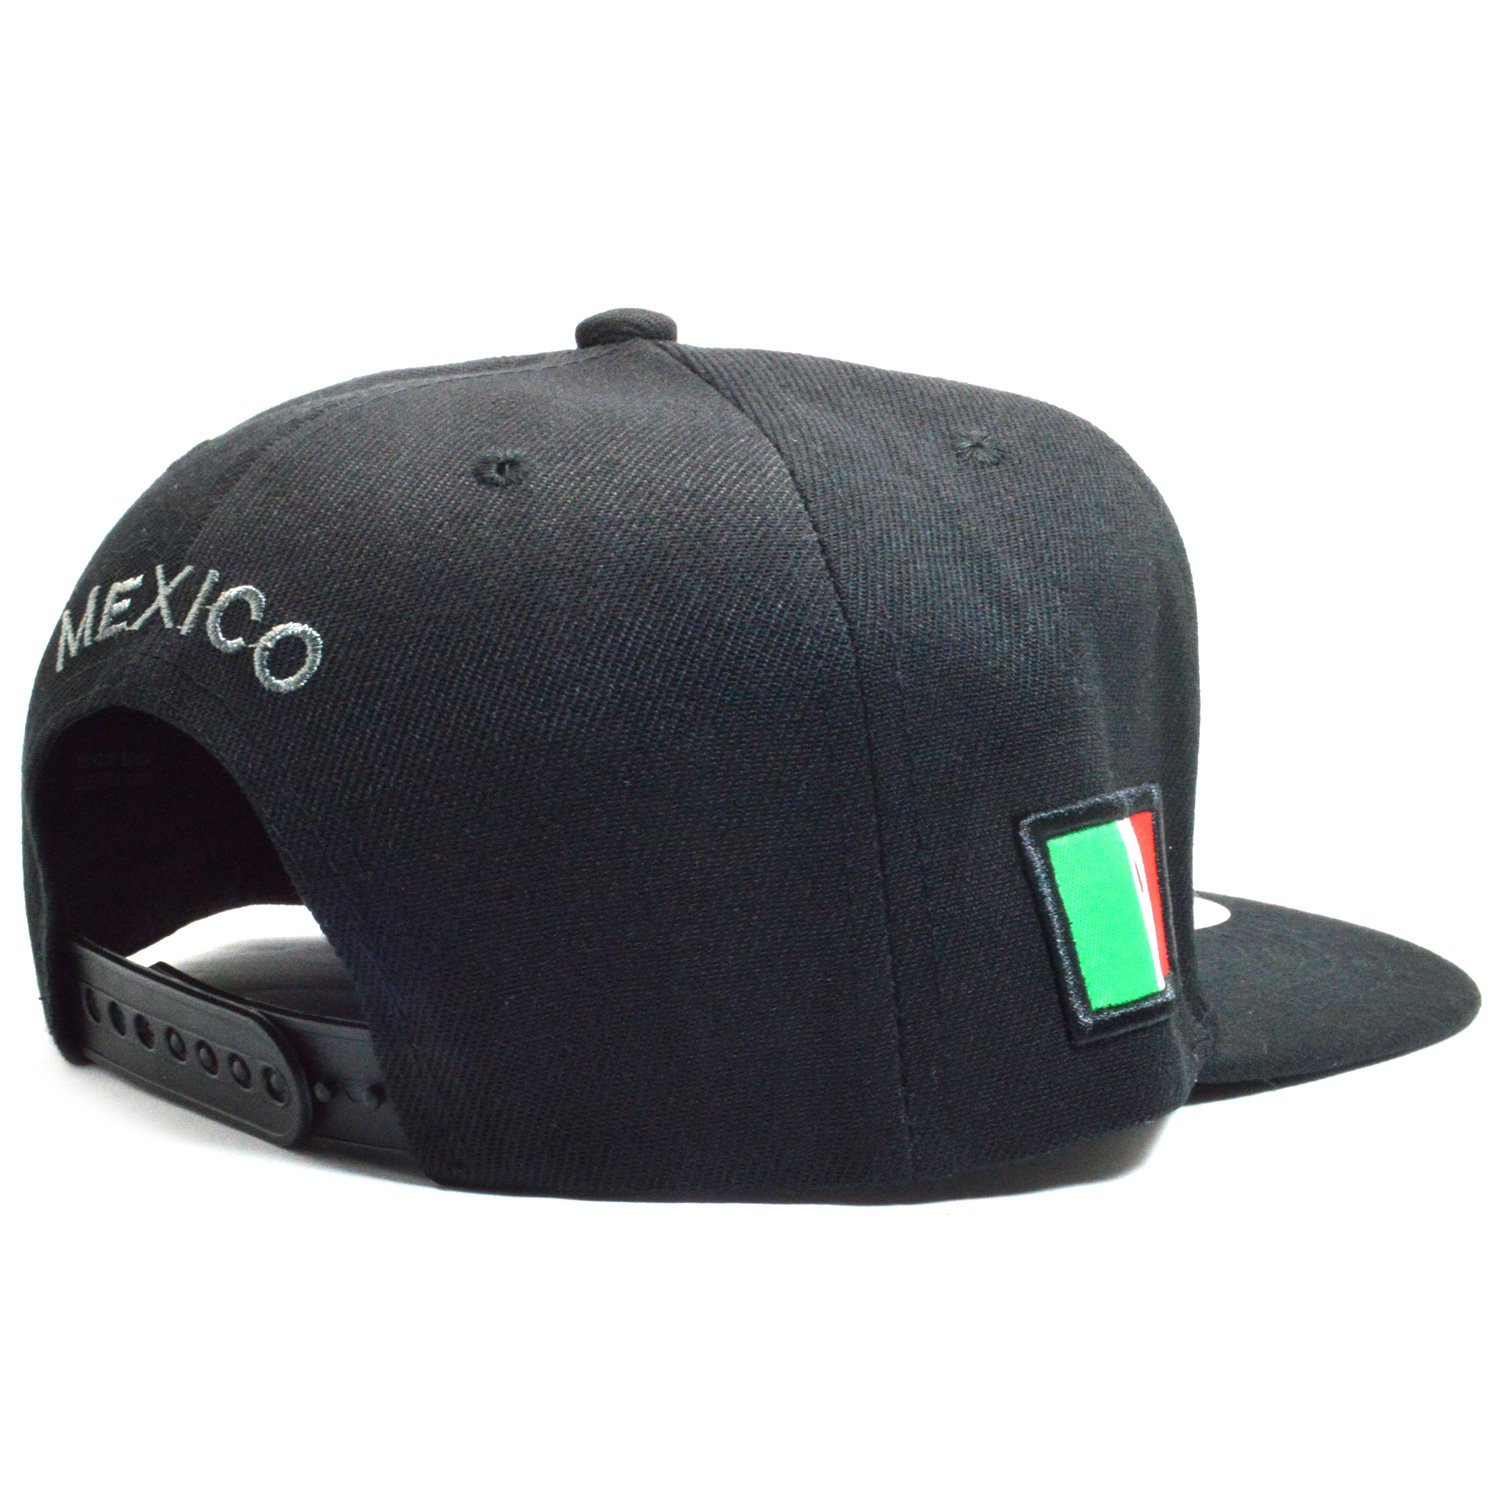 e502c10e67cea AblessYo Mexican Hat Mexico Federal Embroidered Snapback Baseball Cap Flat  Bill AYO6028 (Chihuahua) at Amazon Men s Clothing store